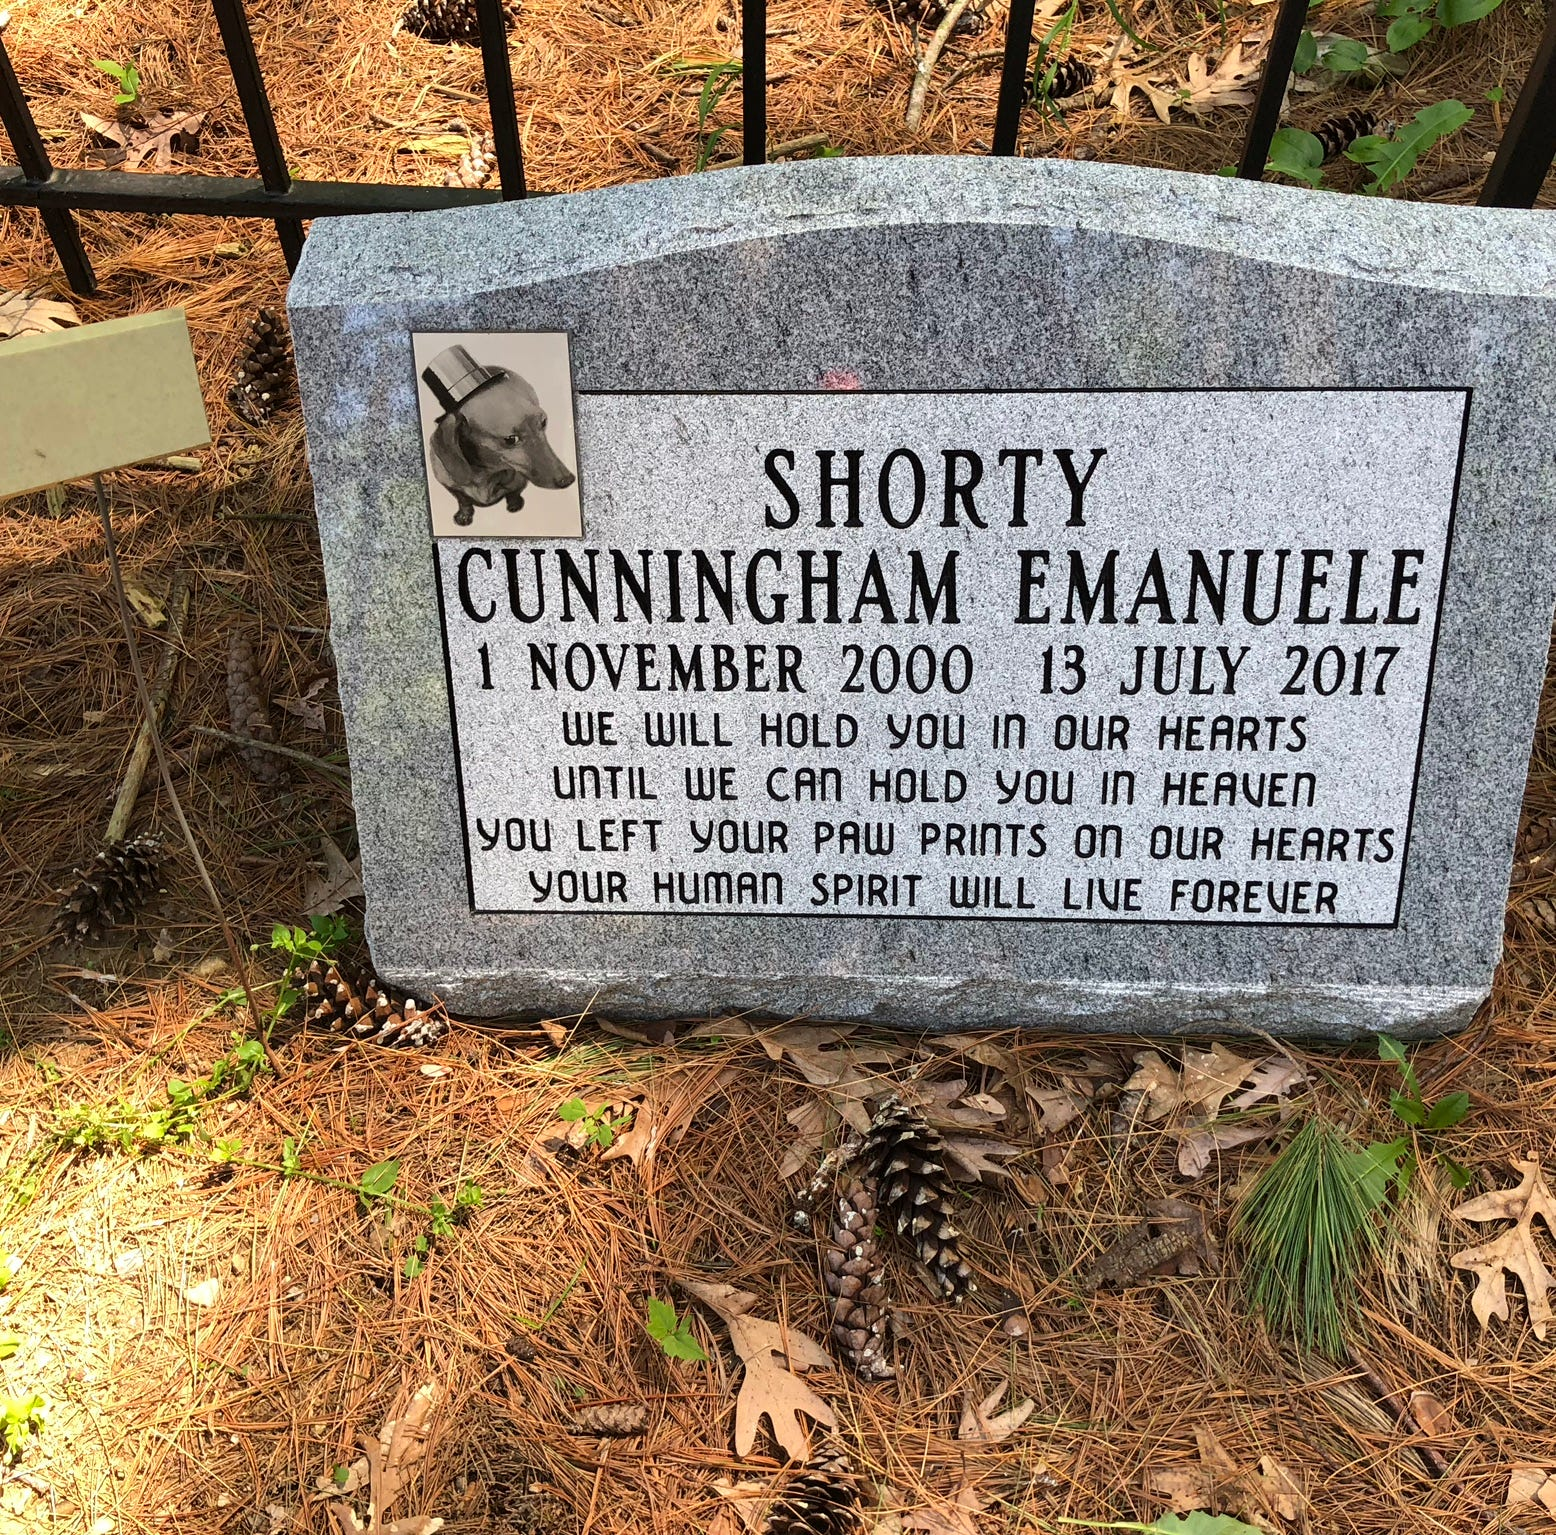 Shorty, a dachshund, was buried in Heavenly Acres pet cemetery in Genoa Township last year, but the cemetery's future is uncertain after the lease expired.